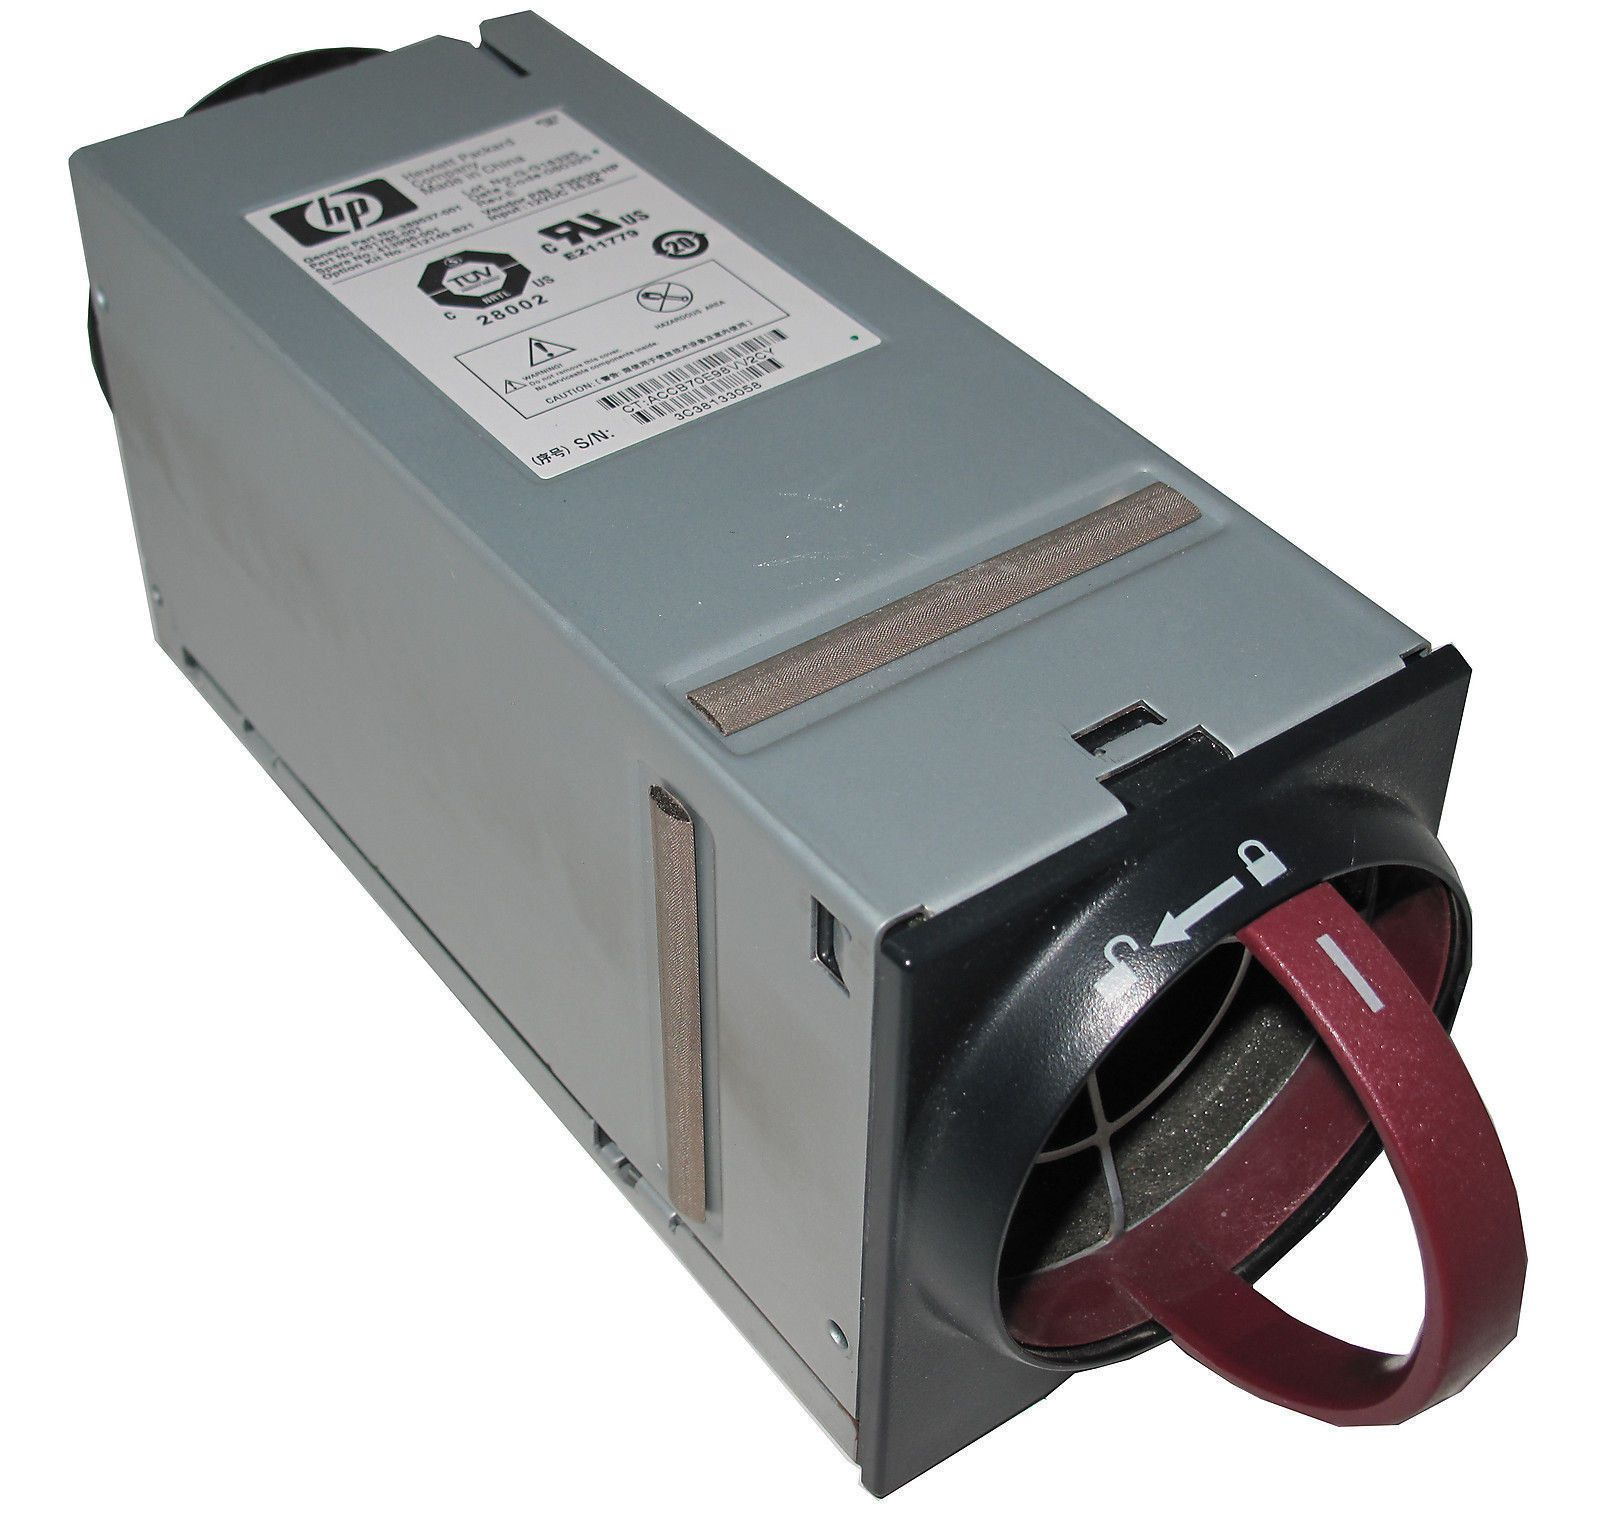 HP BLC7000 System Active Cooling Fan Mod 413996-001